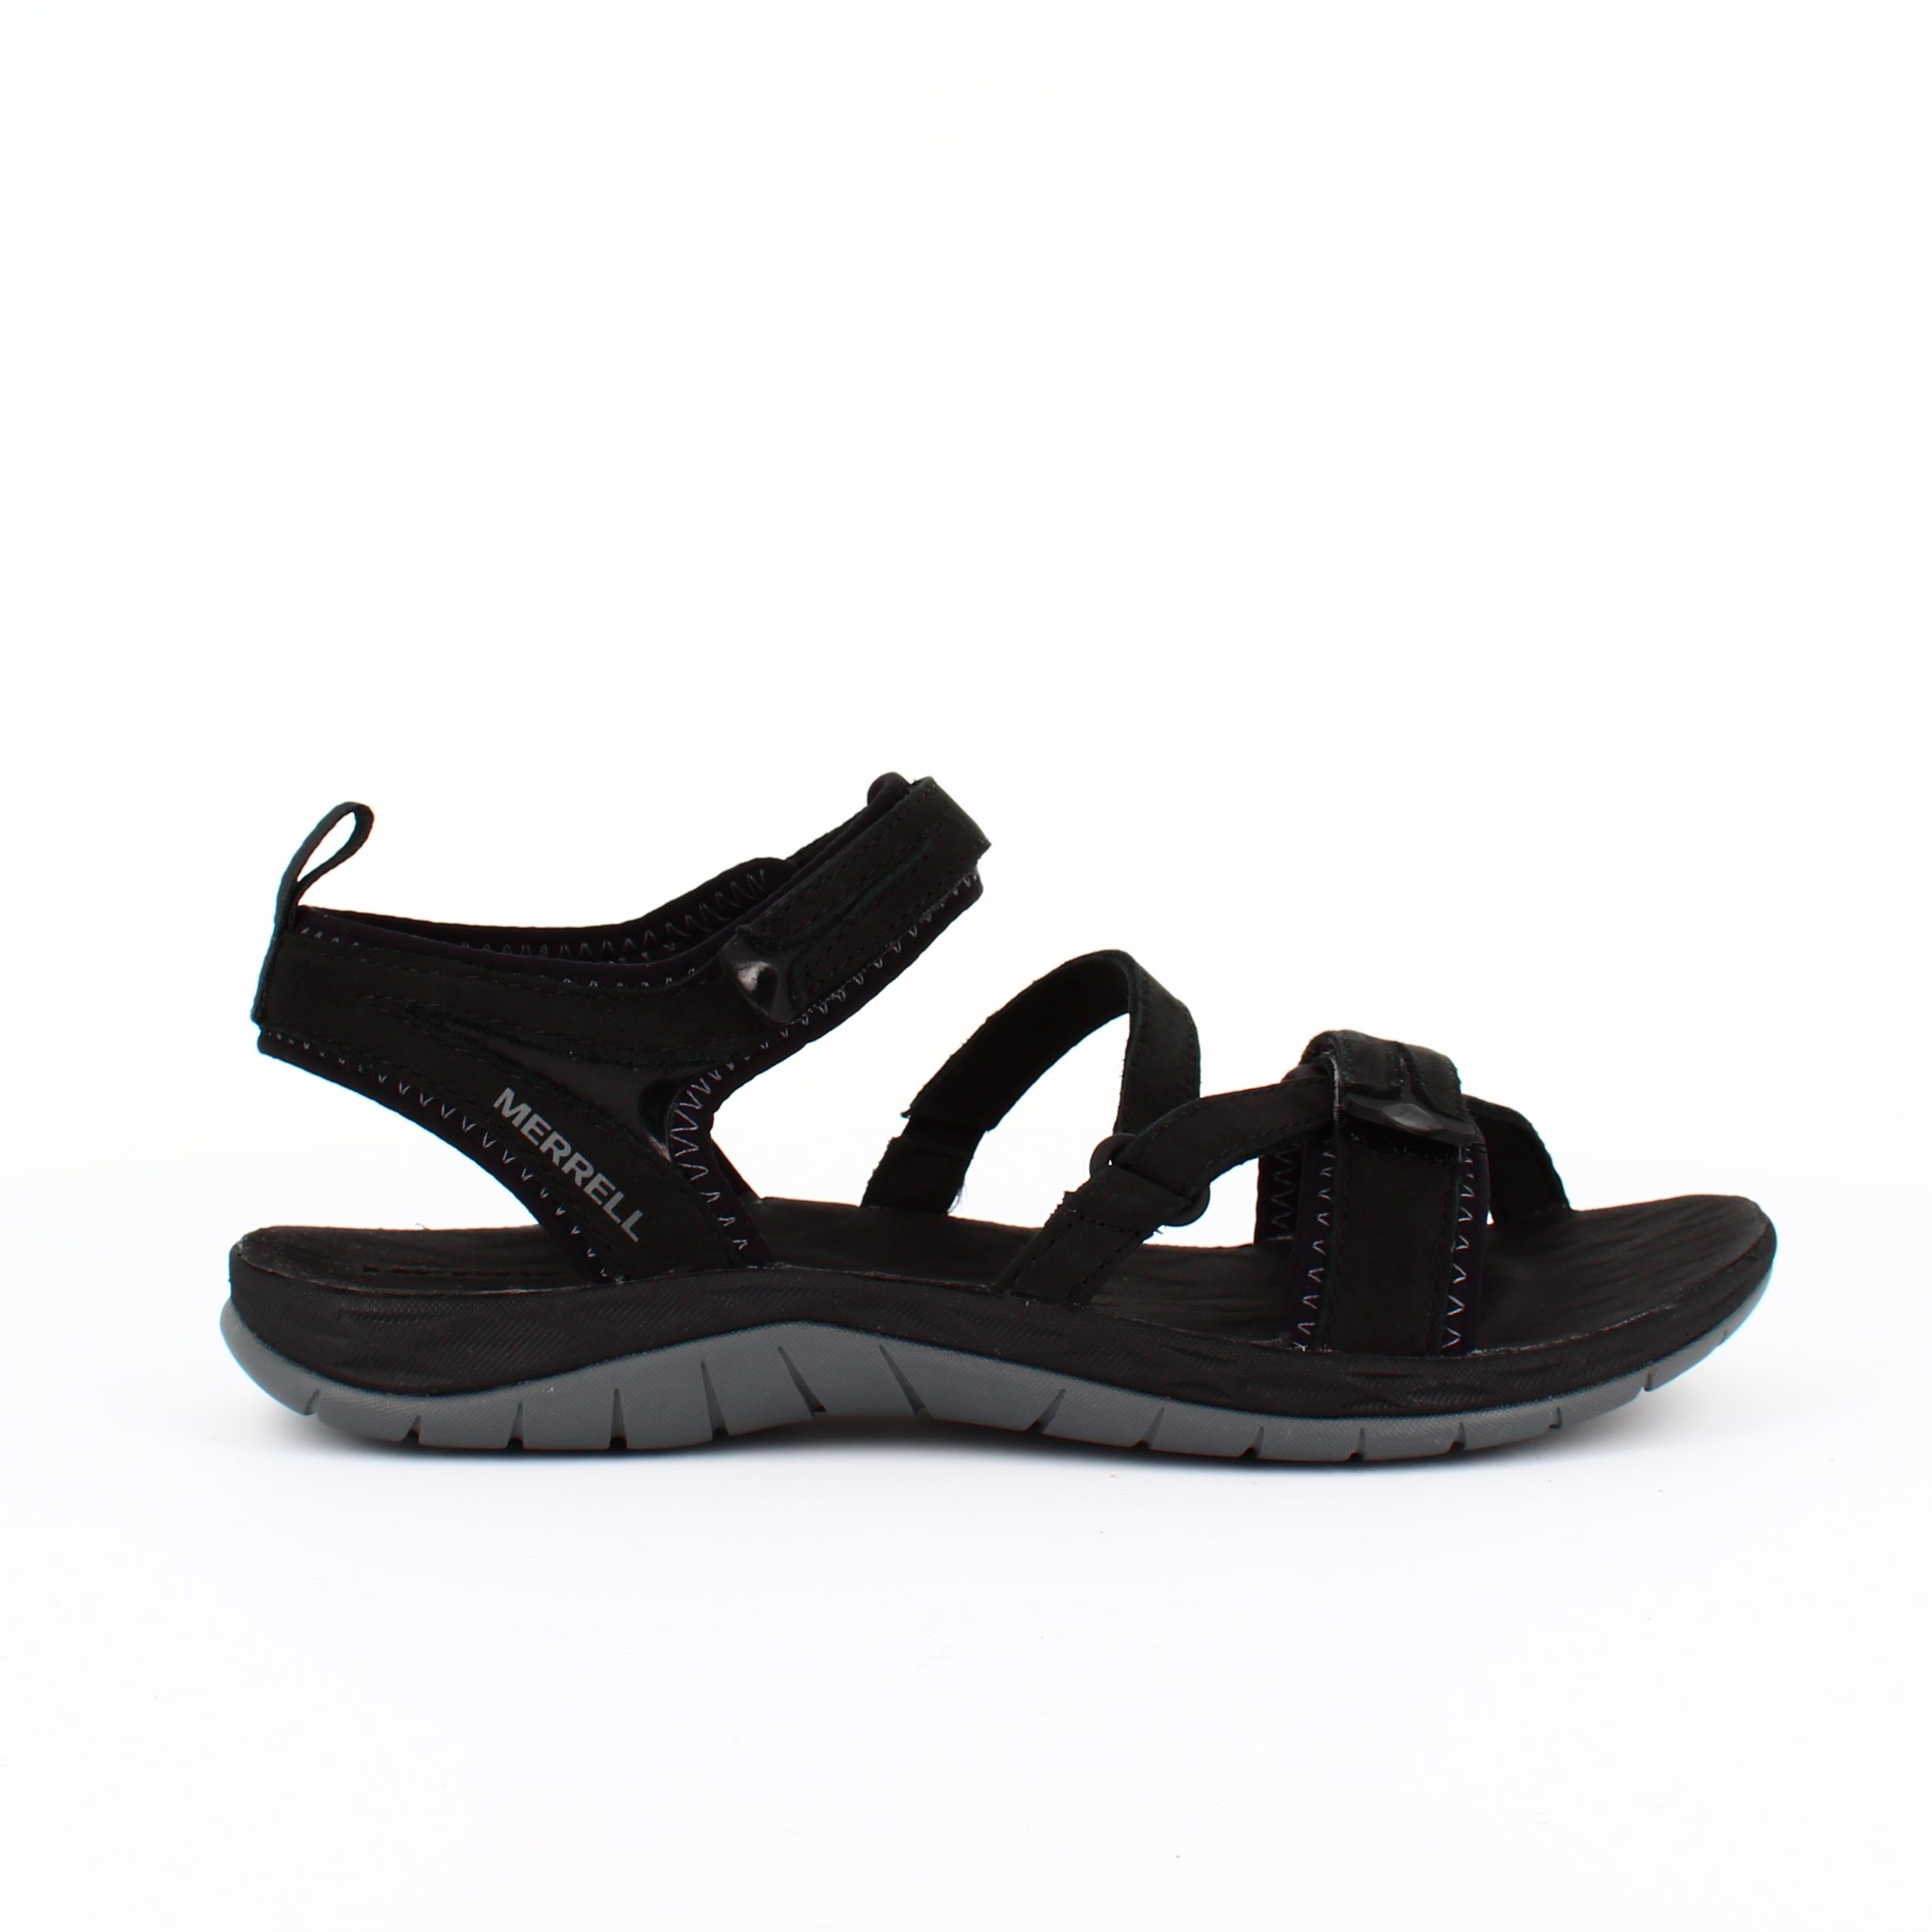 Image of   Sort sporty sandal fra Merrell - 36